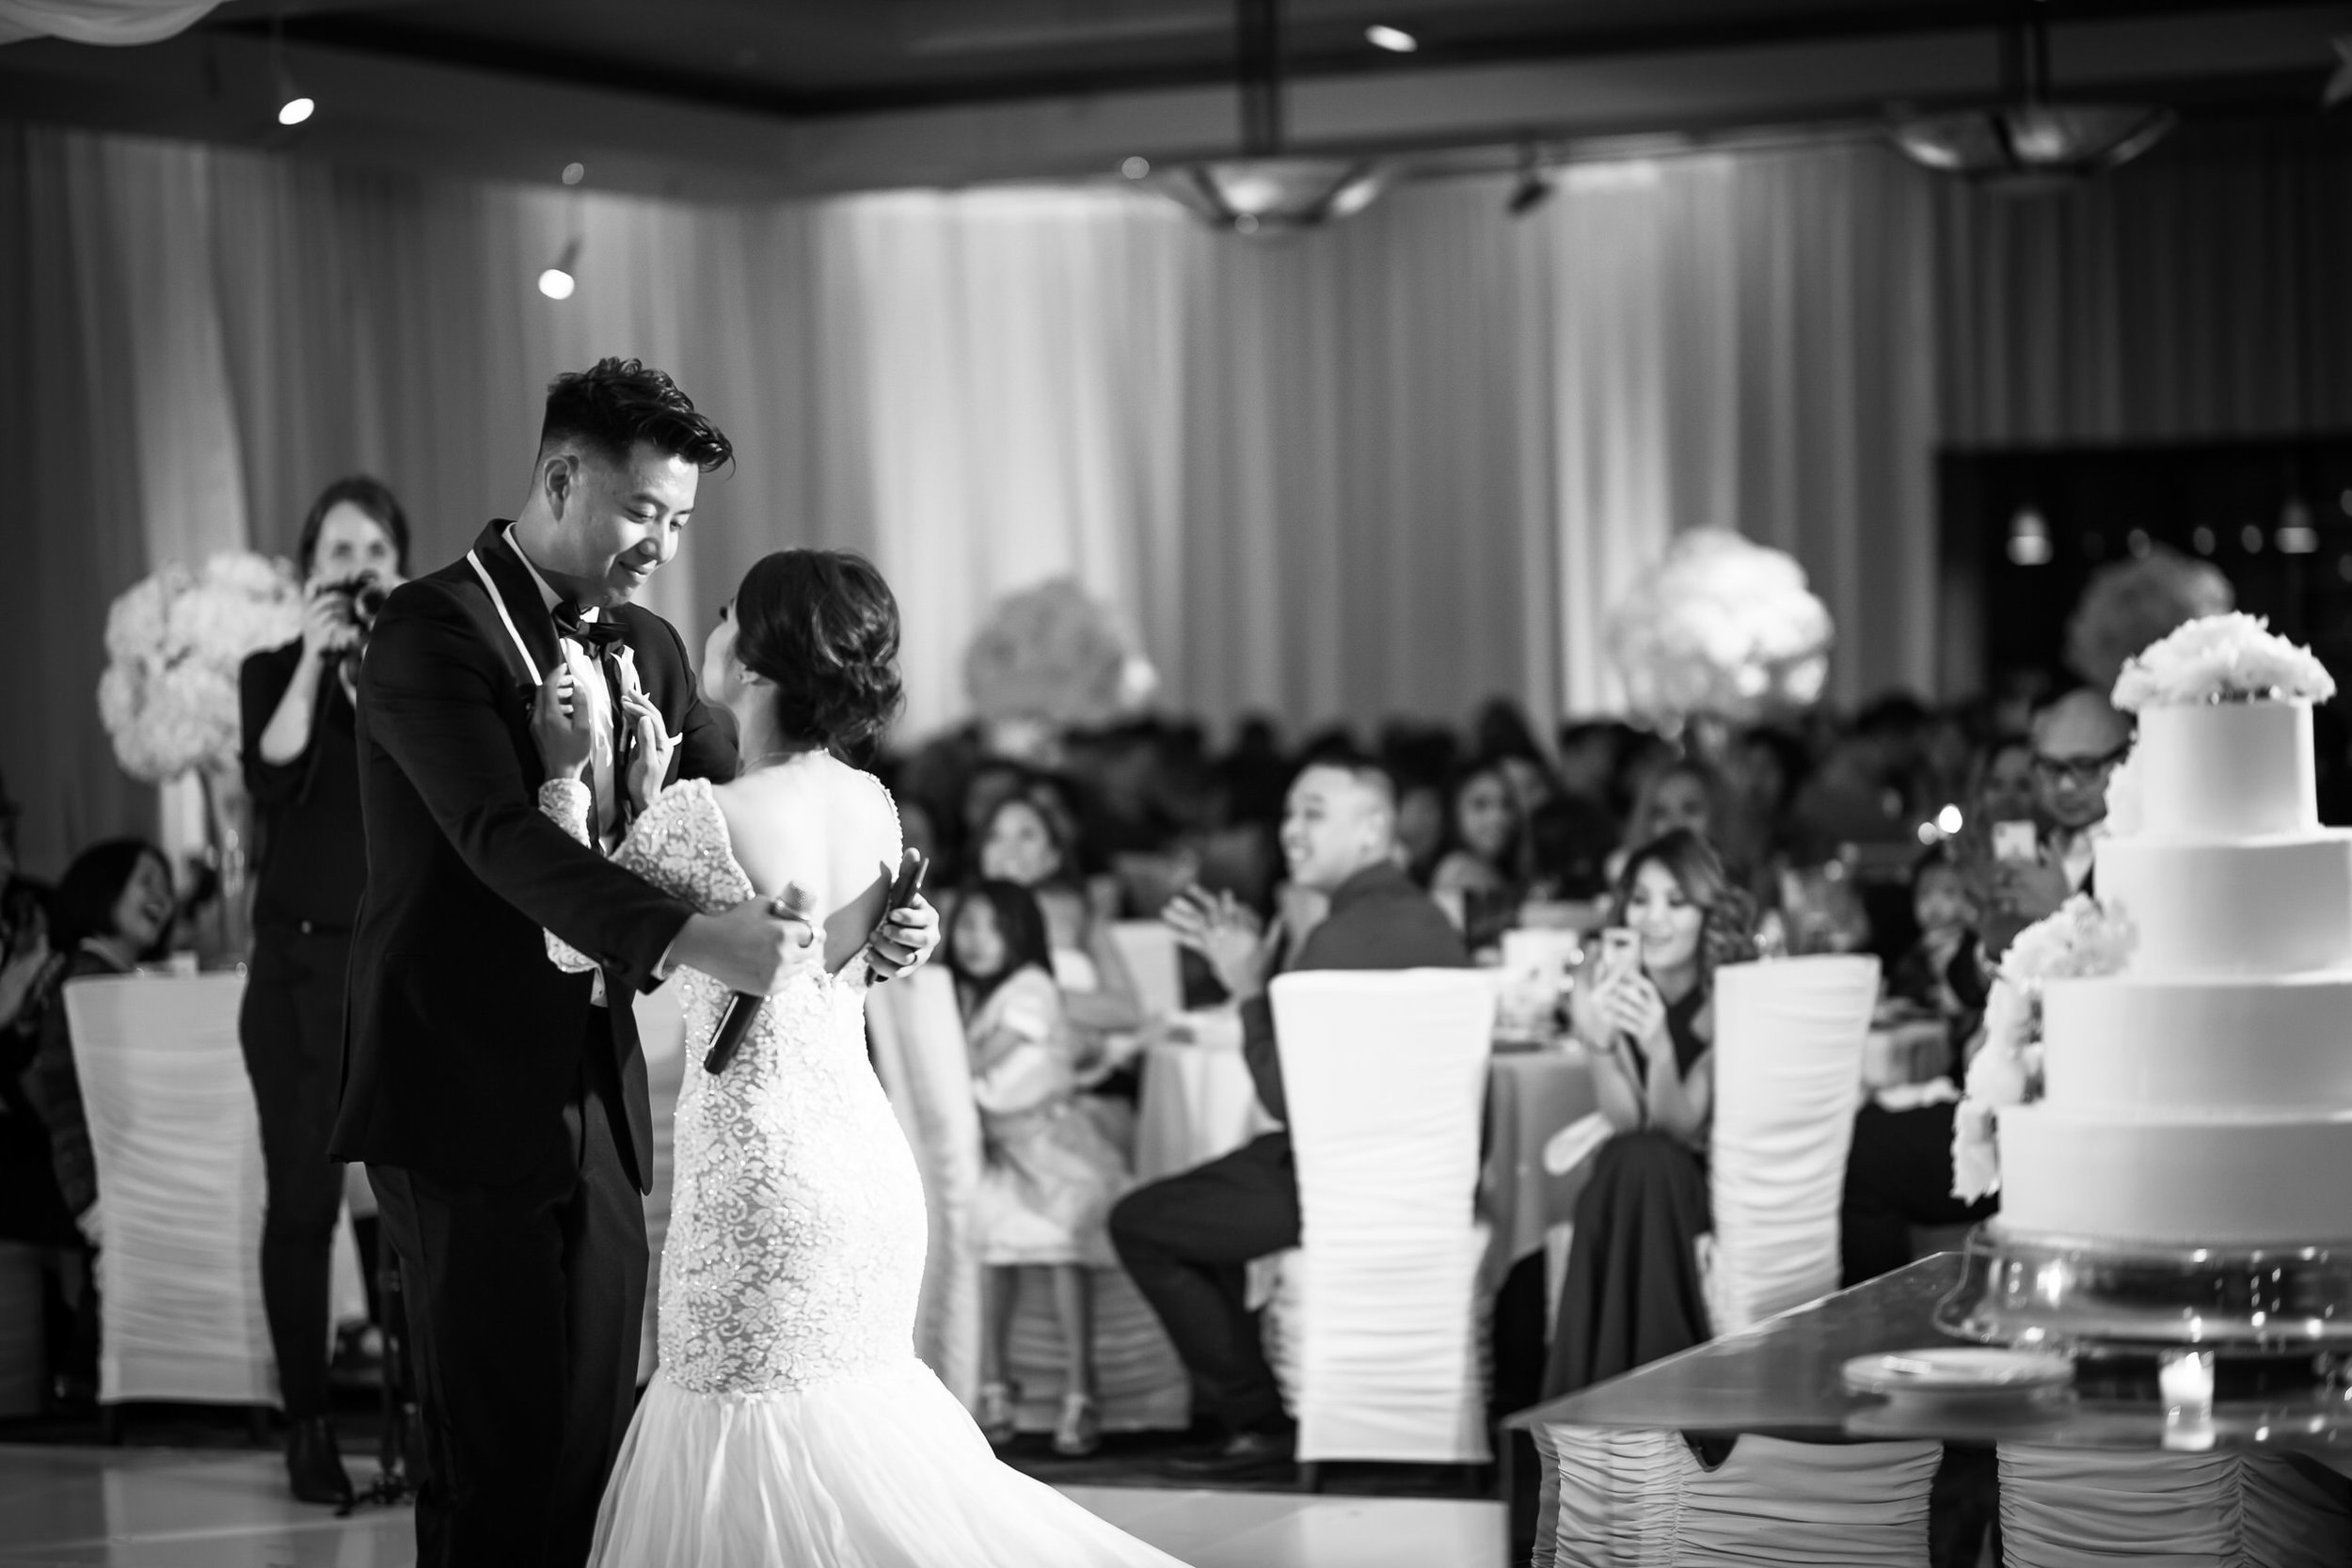 Dream_Wedding_Thanh_Thanh-4141.jpg